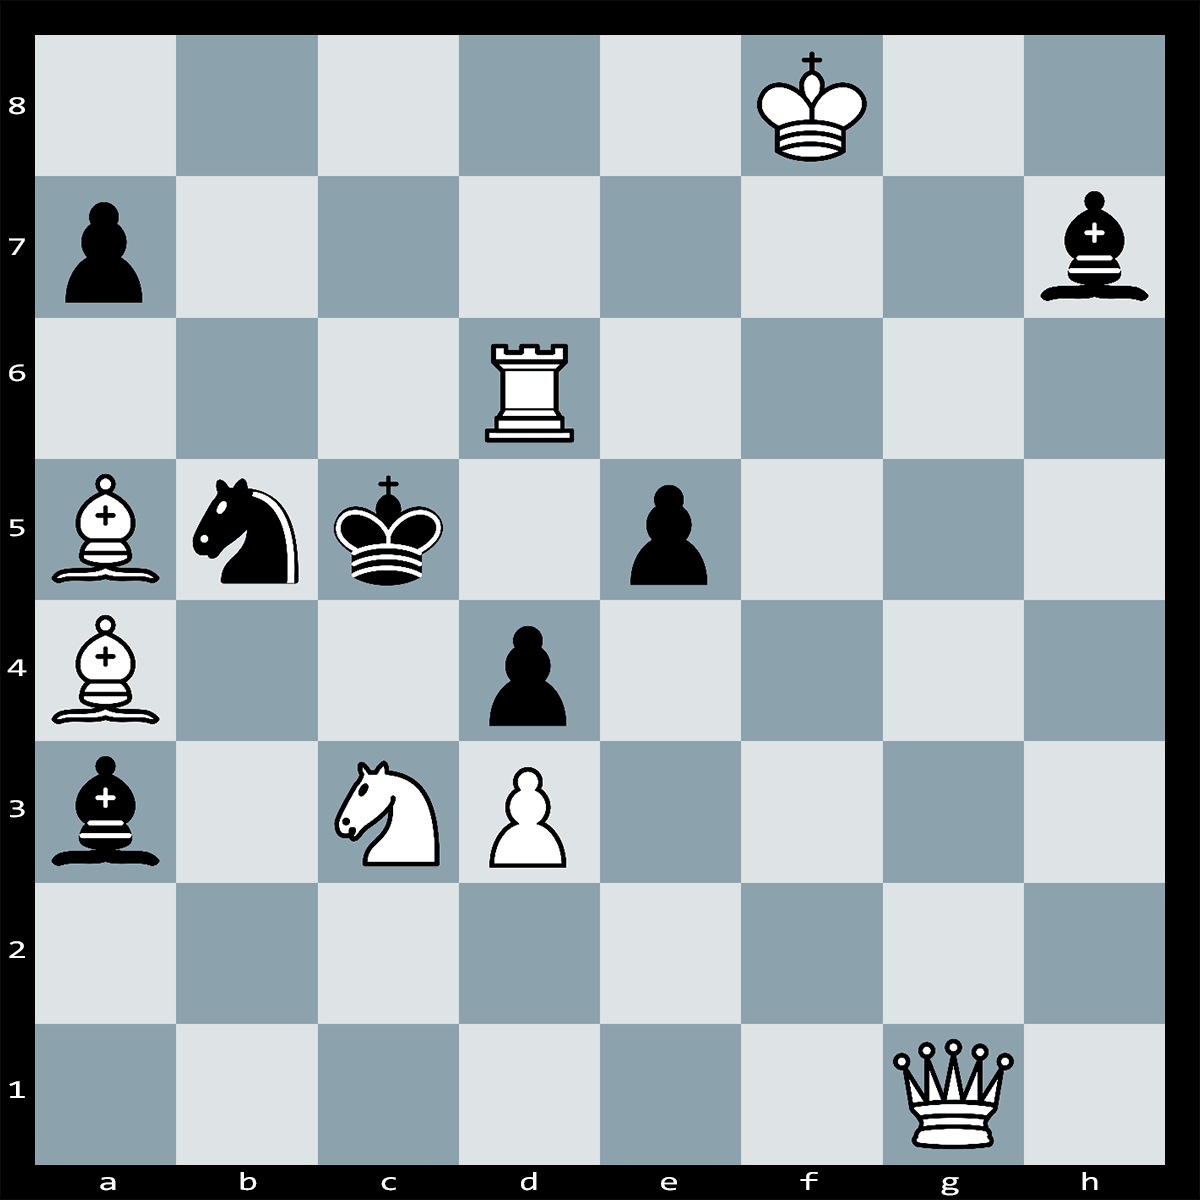 Mate in Two Moves, White to Play - Chess Puzzle #53